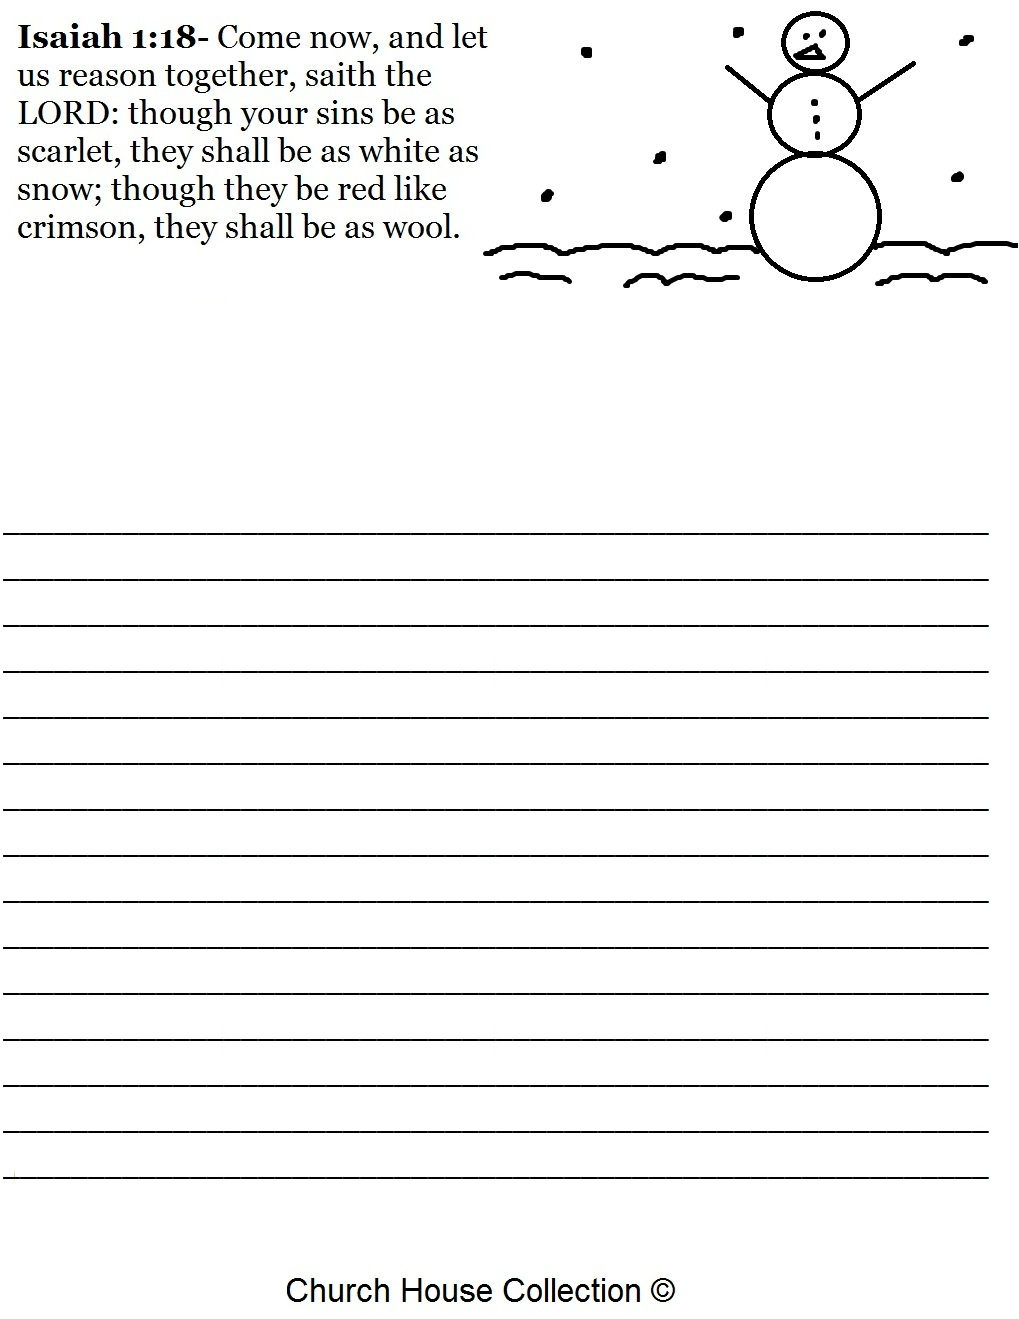 Free Christmas Snowman Isaiah 1:18 Writing Paper Printable Template for kids in Sunday school by Church House Collection- Christmas Sunday School lessons